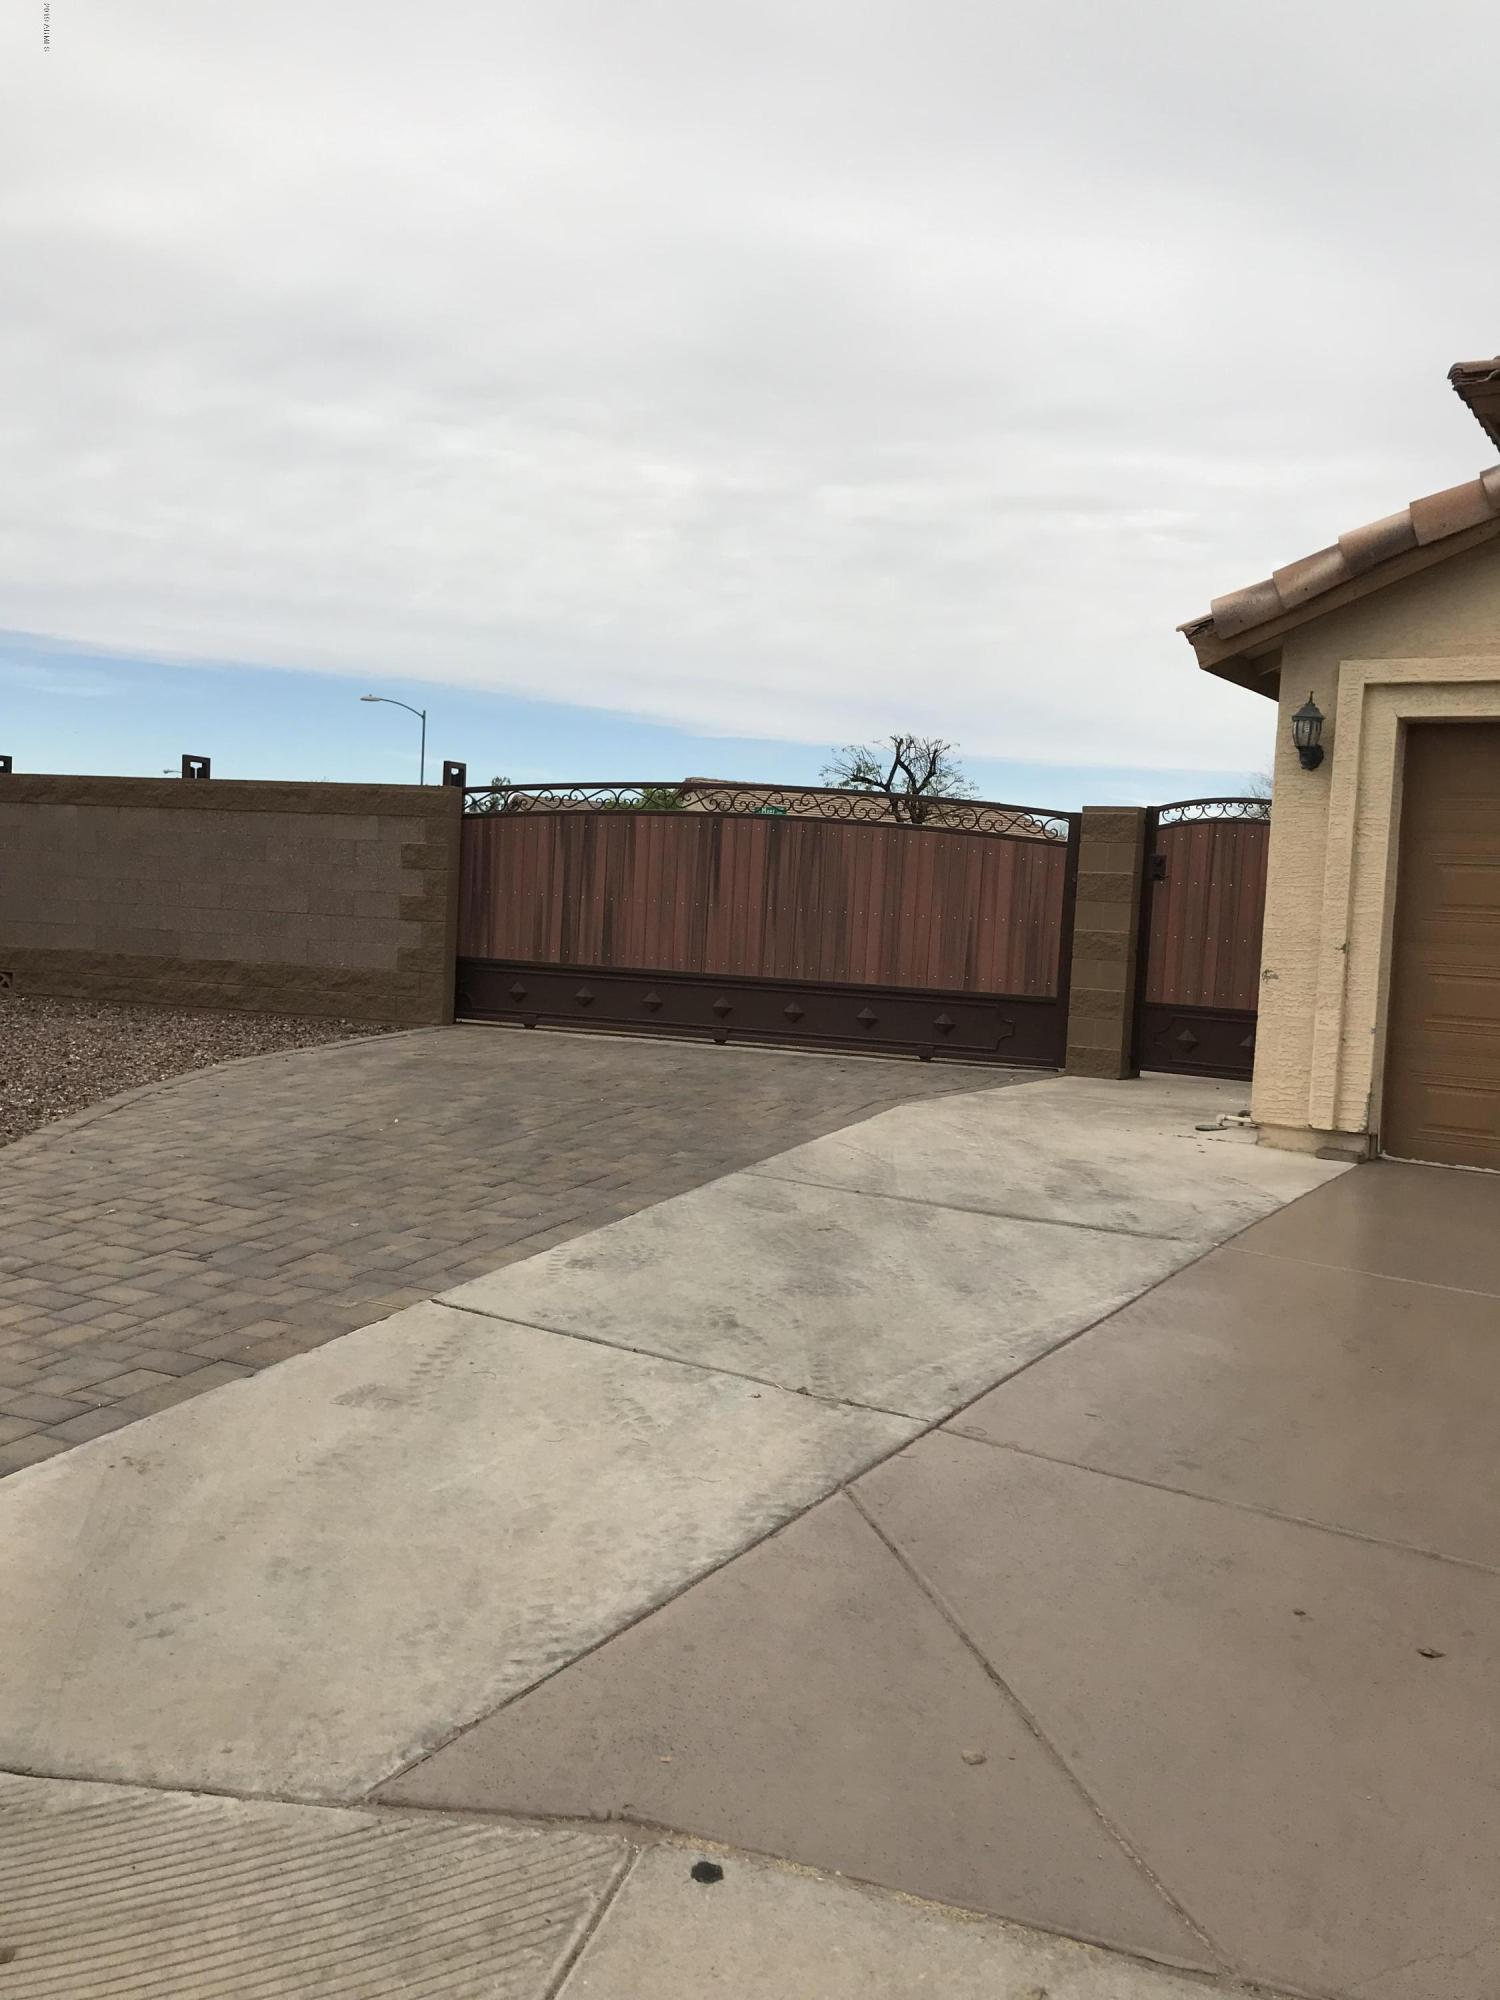 MLS 5899658 13125 N EL FRIO Street, El Mirage, AZ 85335 El Mirage AZ Eco-Friendly